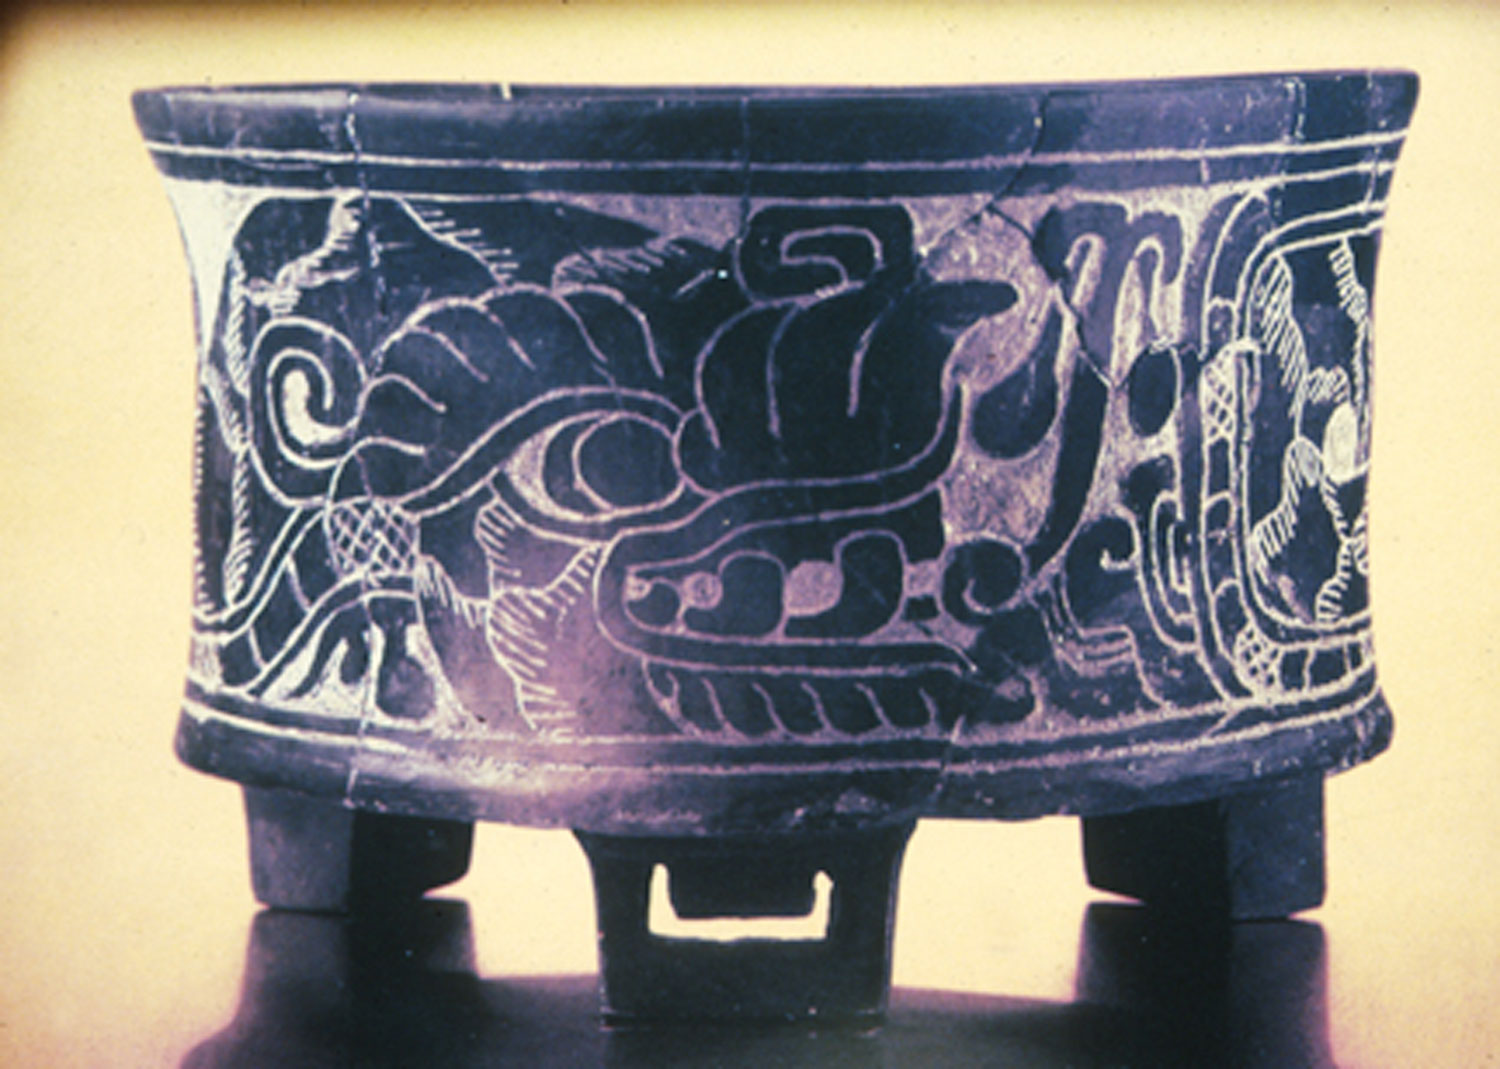 Vase from Teotihuacán, with Quetzalcóatl (600-750 AD).